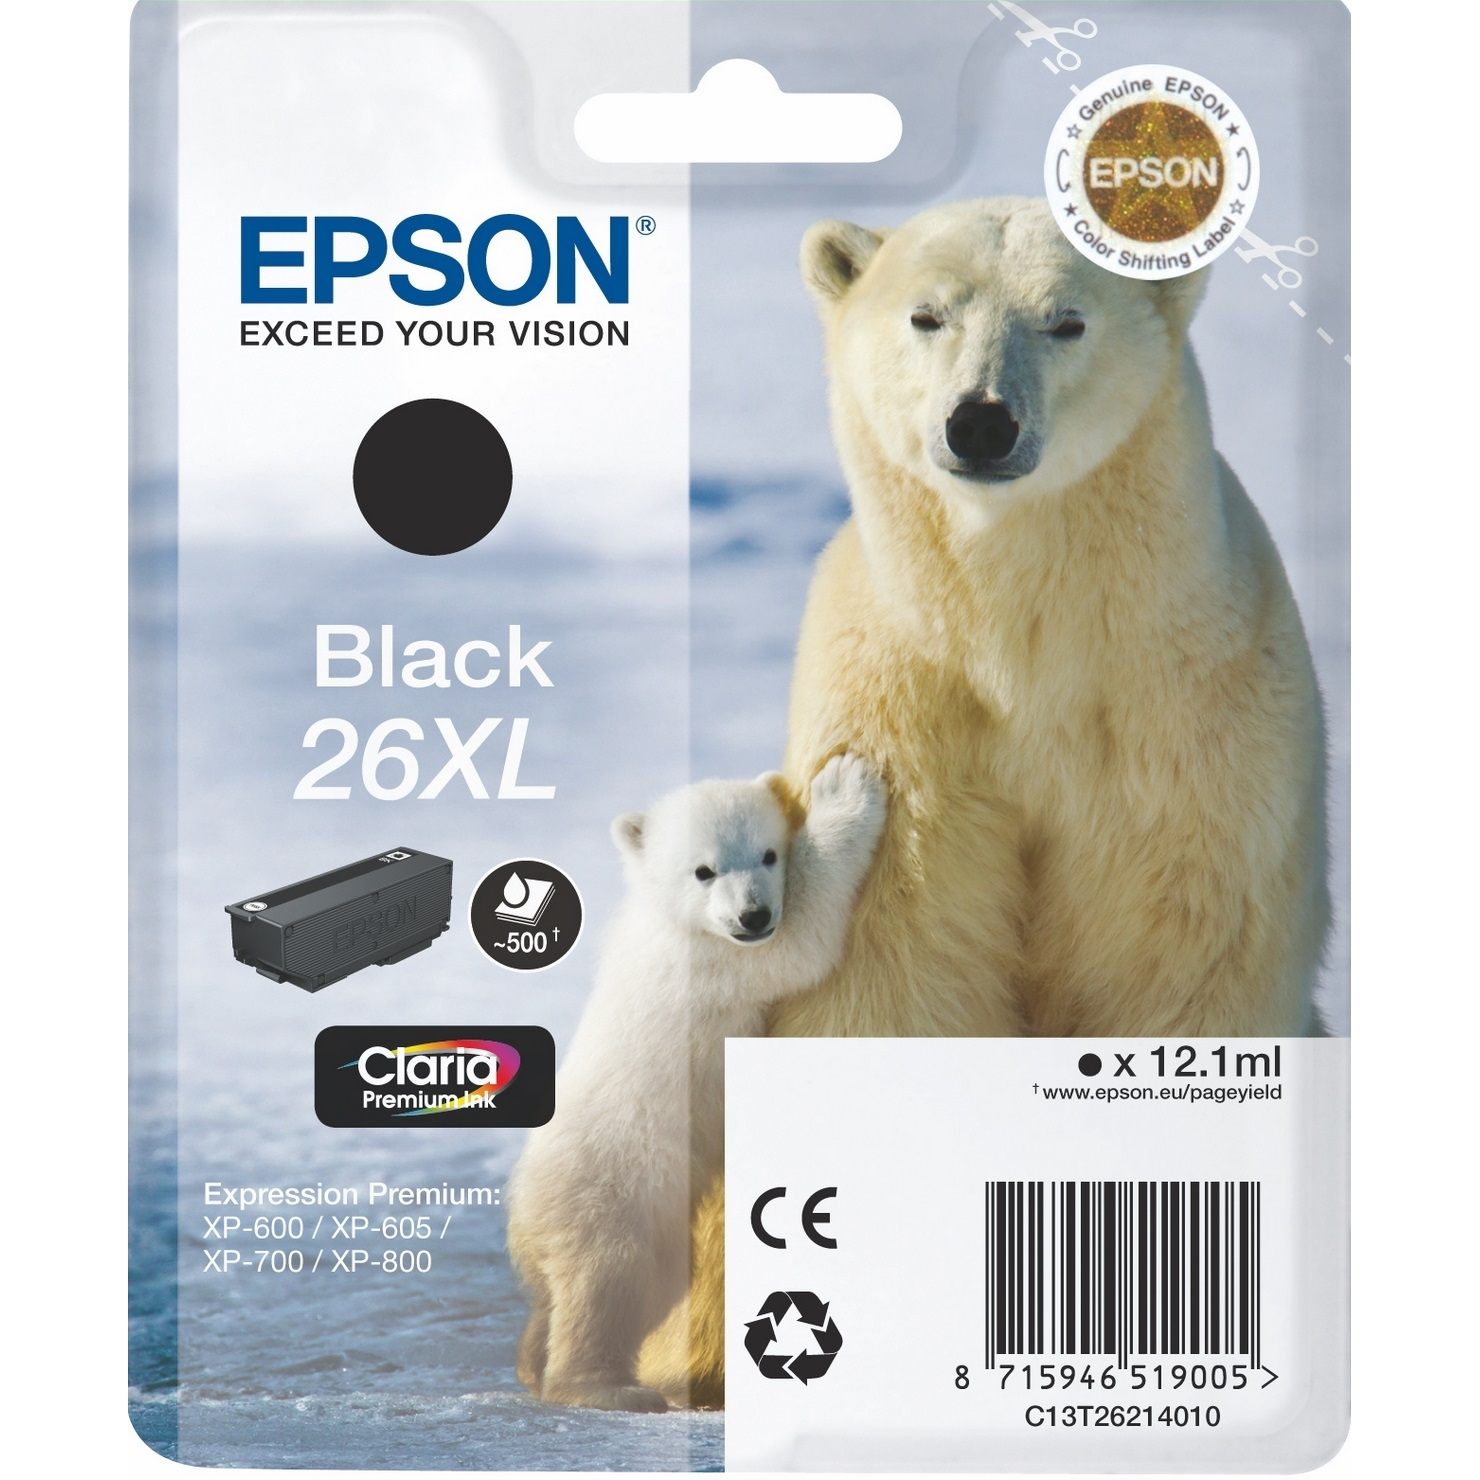 Original Epson 26XL Black High Capacity Ink Cartridge (C13T26214010)